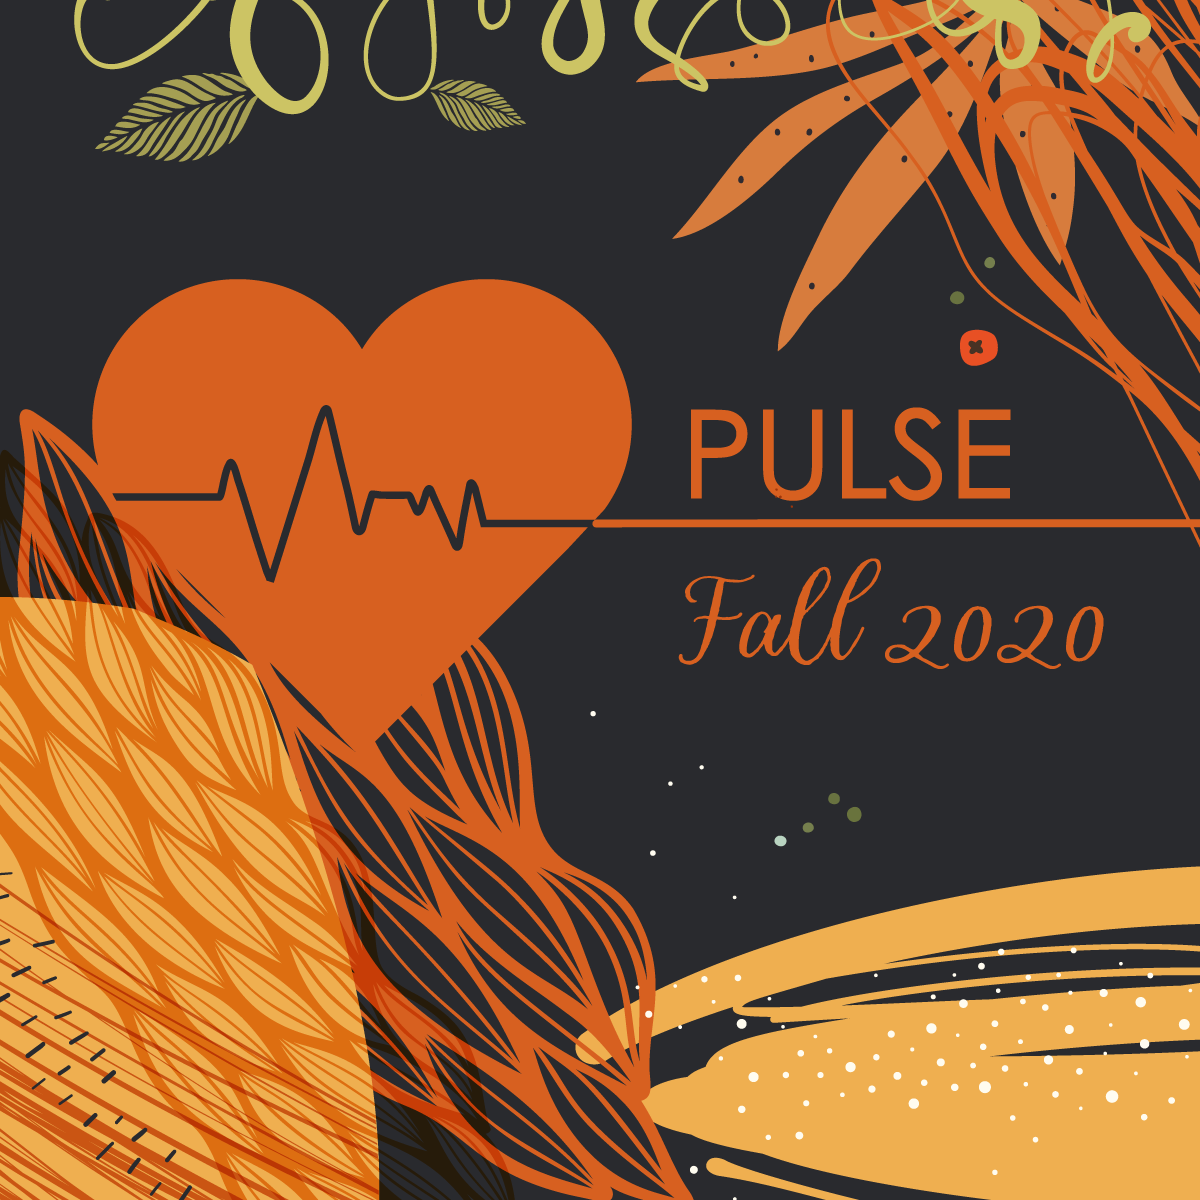 Fall 2020 PULSE logo